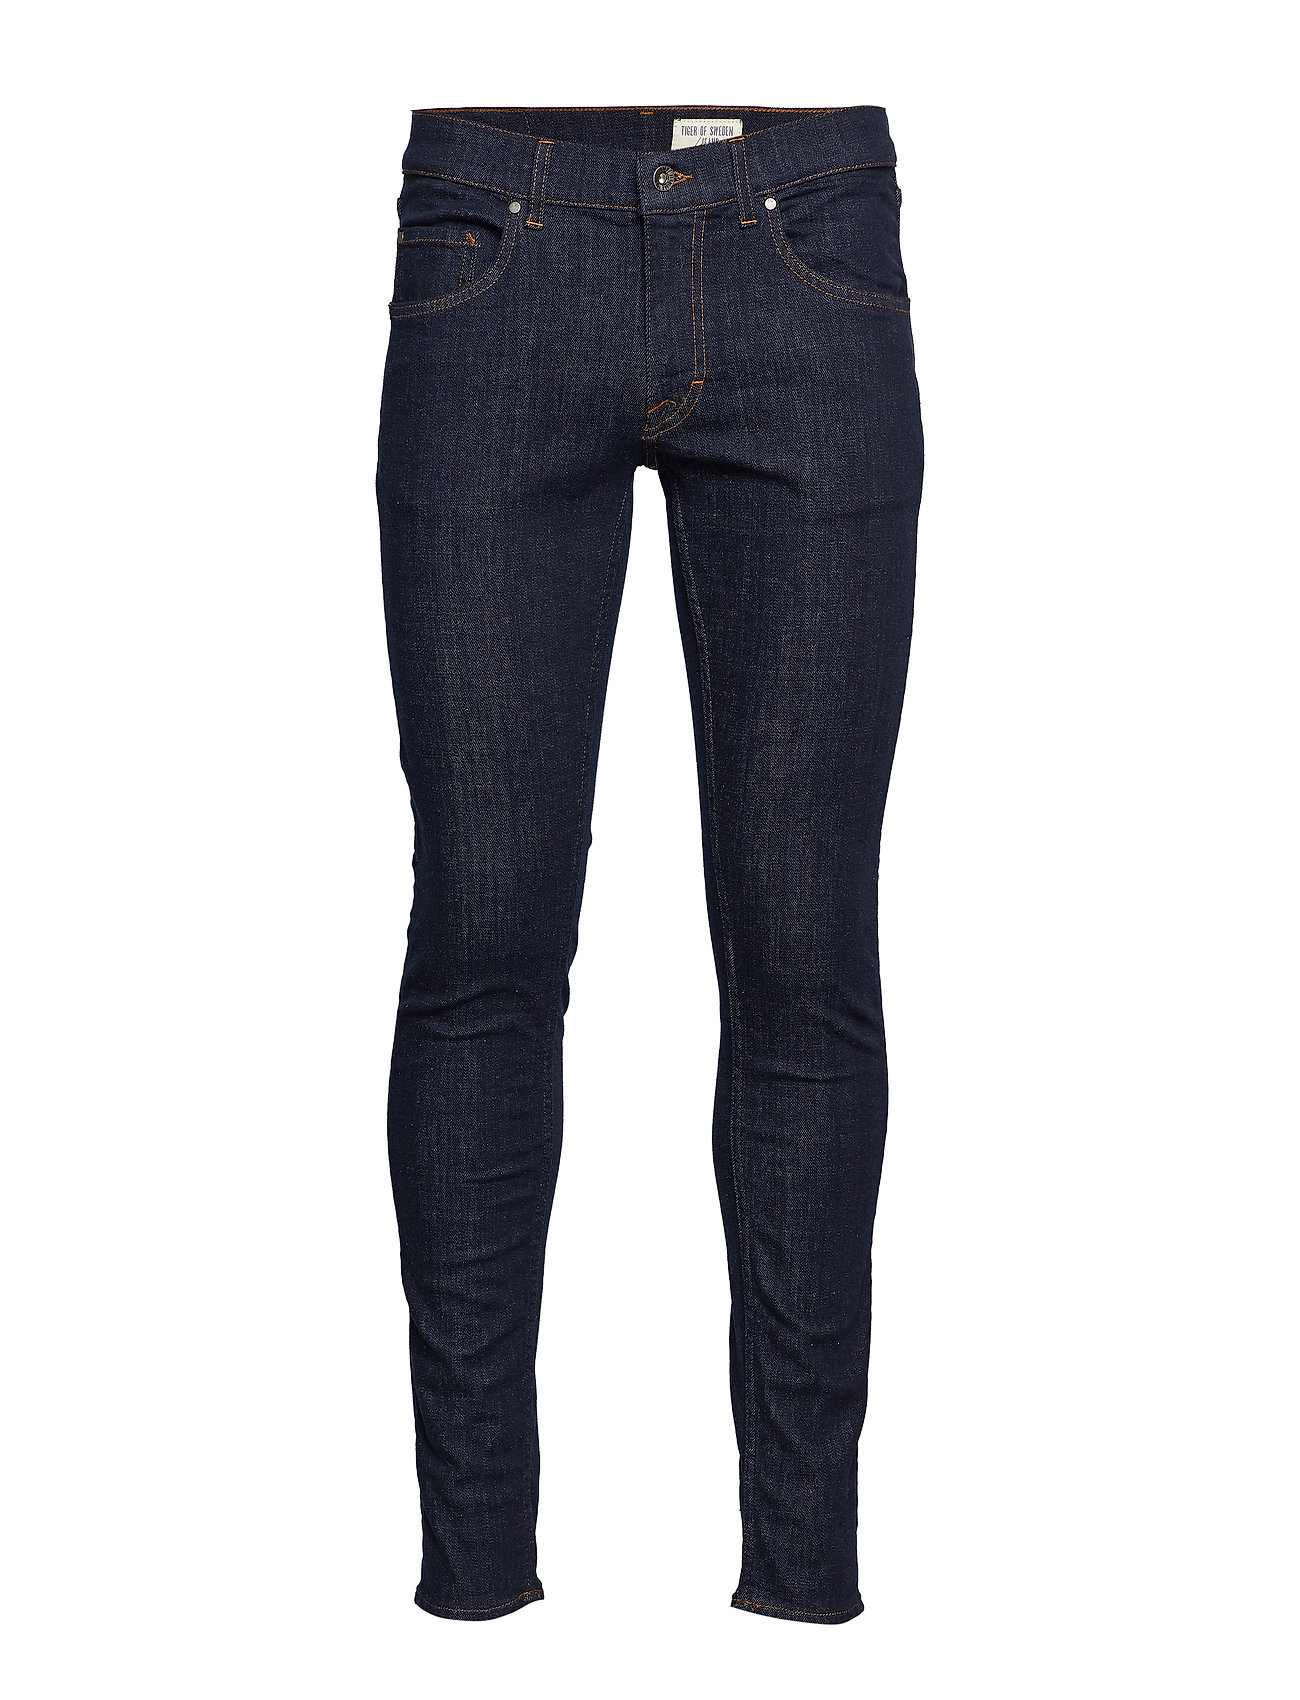 Tiger of Sweden Jeans SLIM - MIDNIGHT BLUE